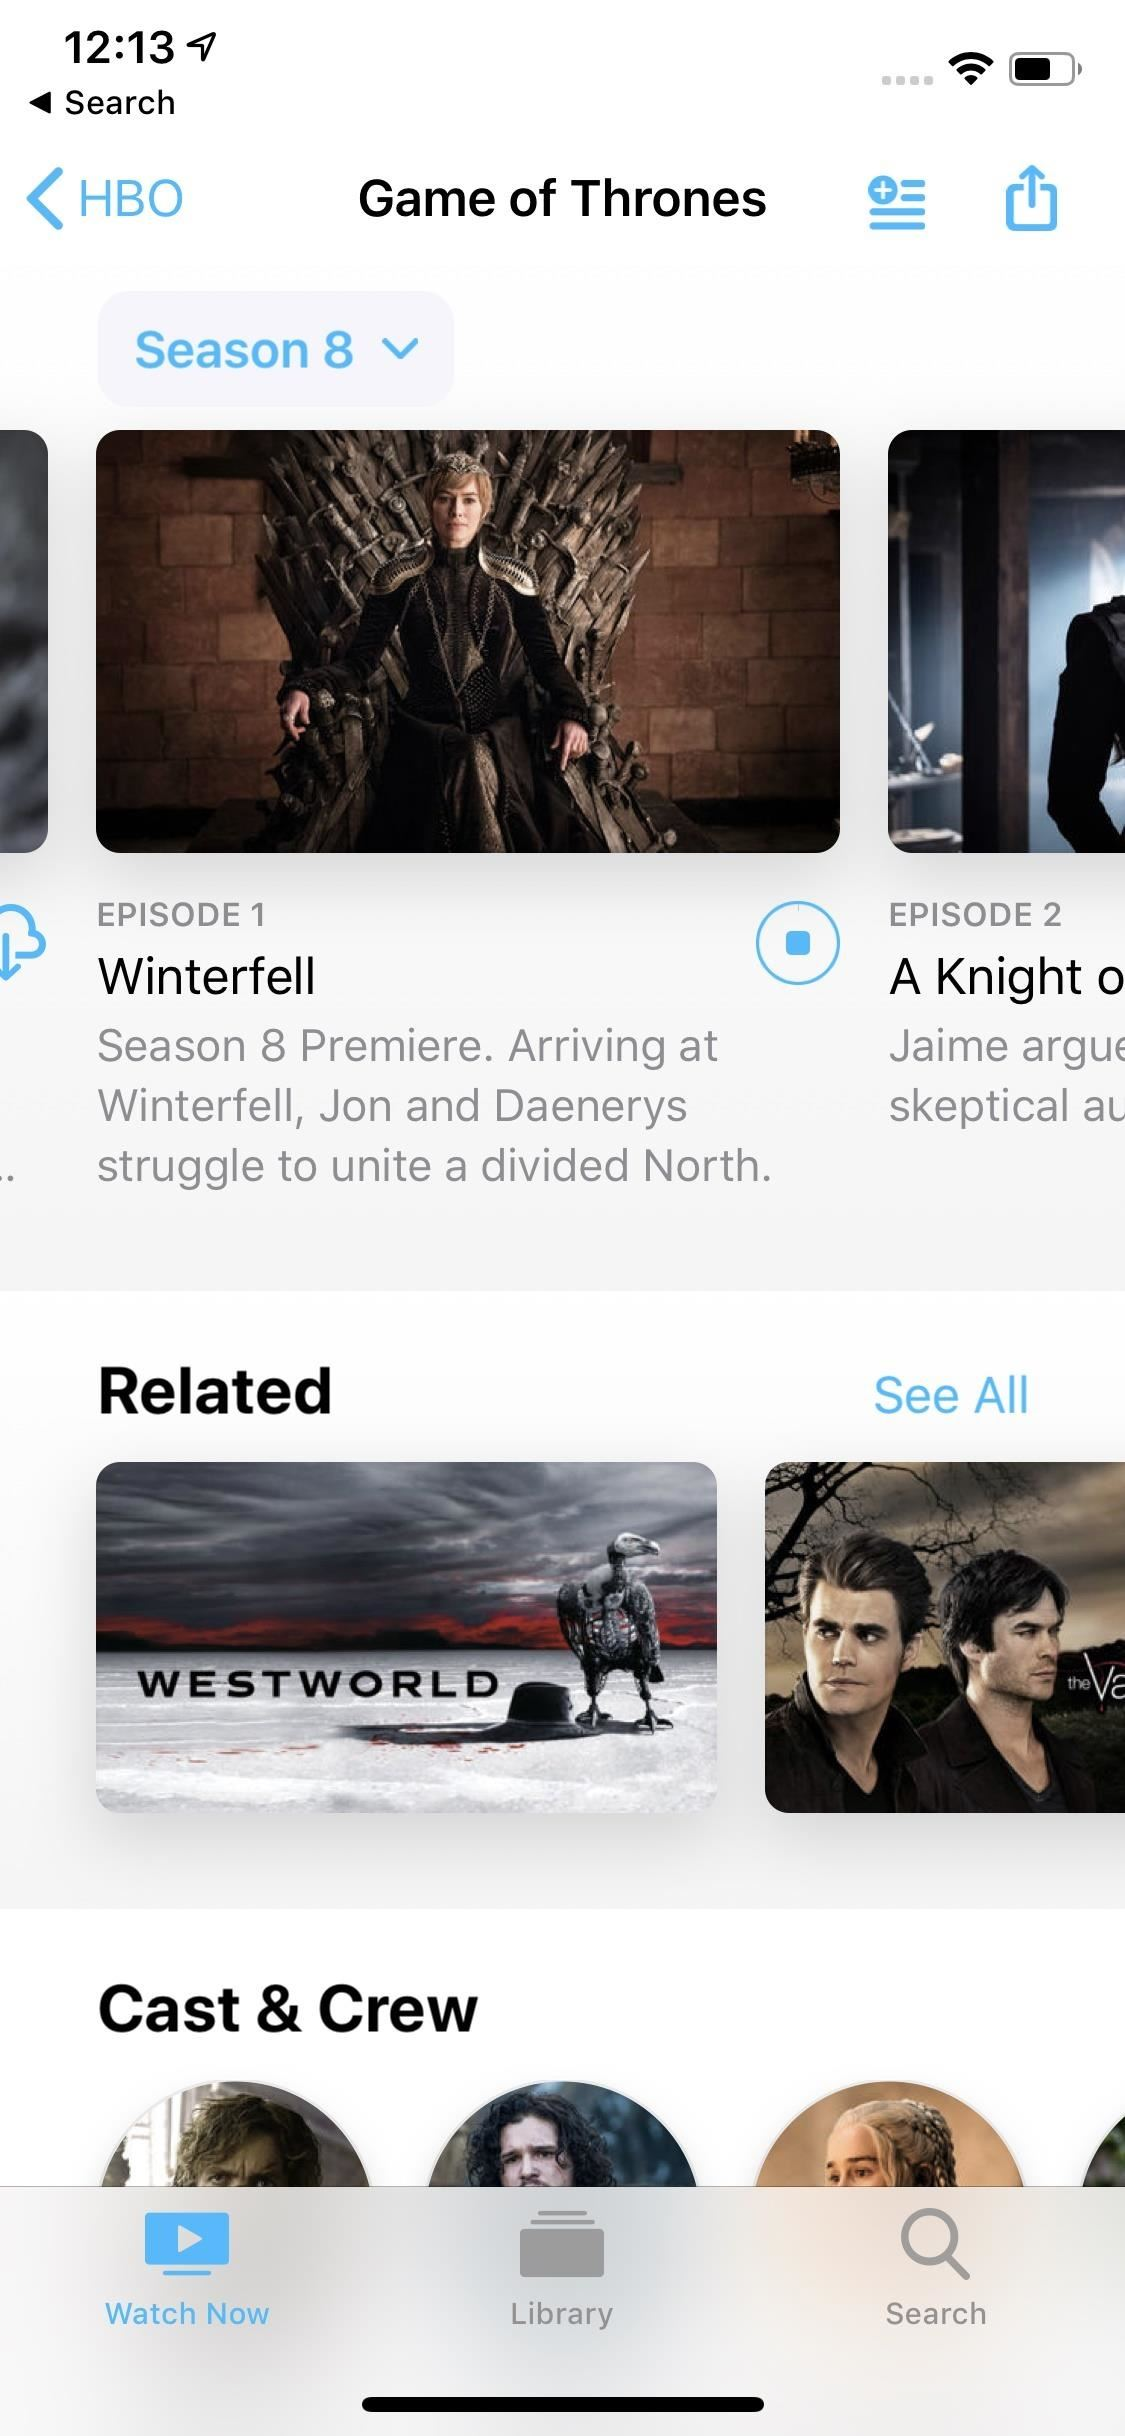 How to Watch HBO Offline on Your iPhone for 'Game of Thrones